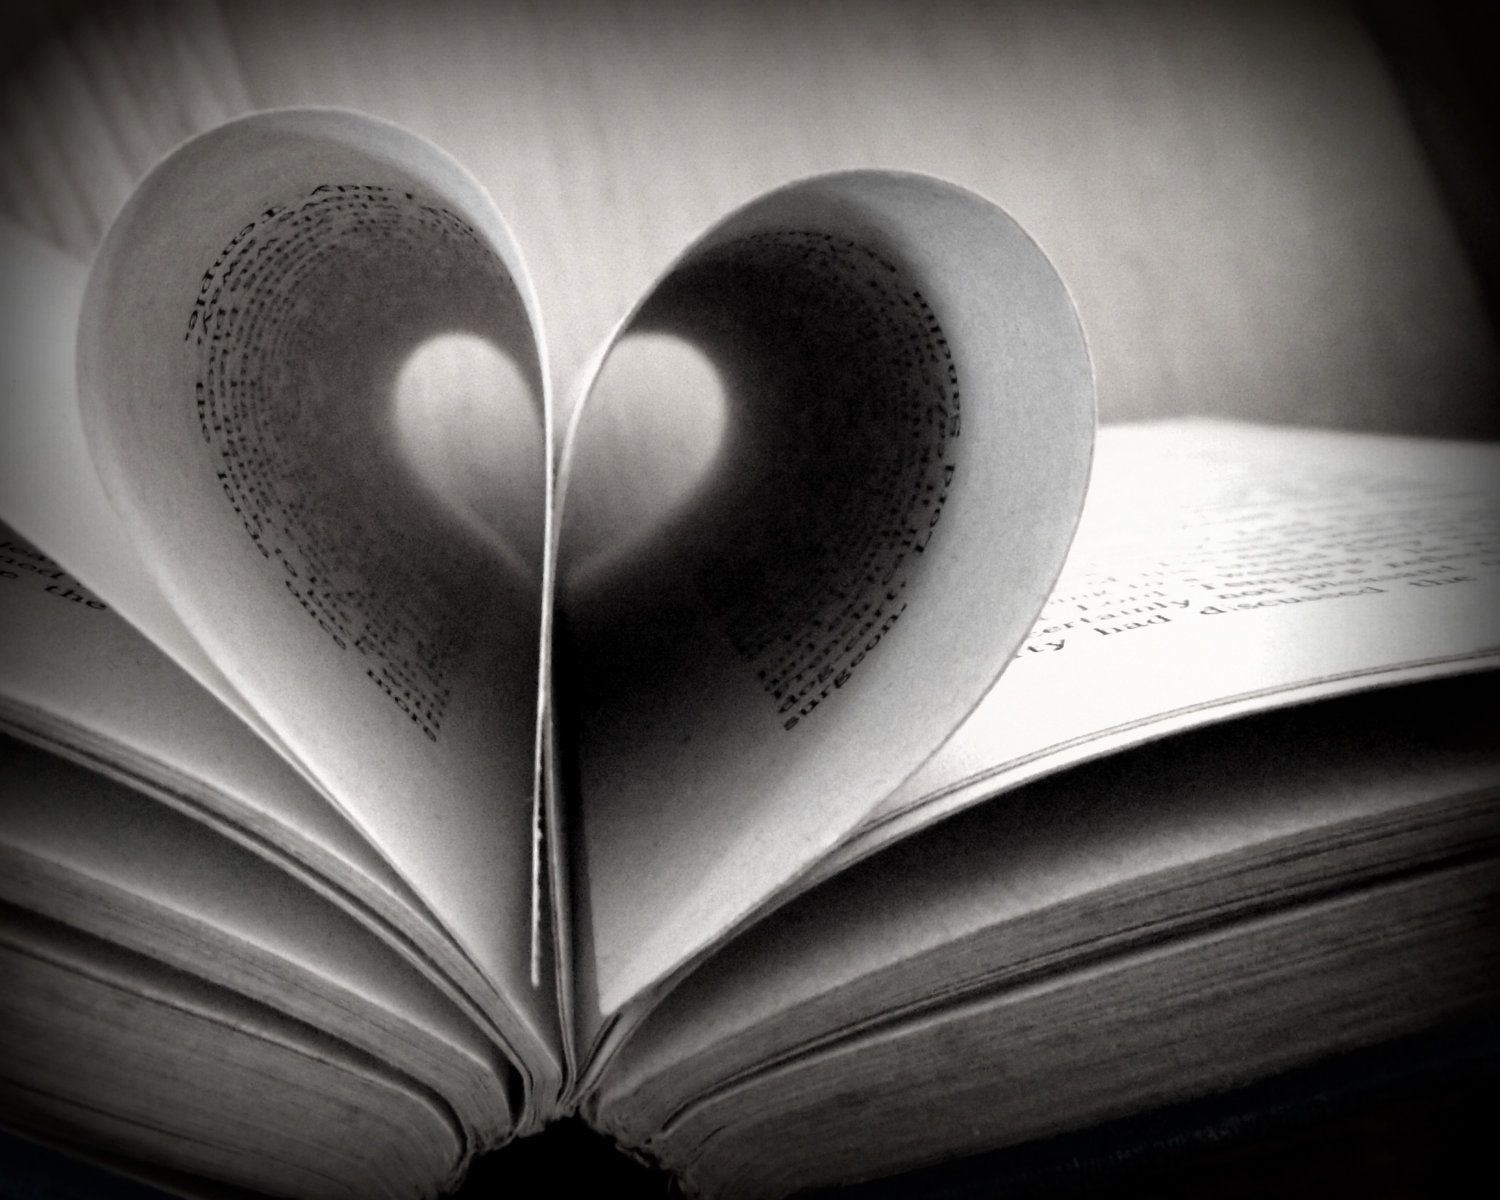 Pin By Marcy Barth On Black And White Black And White Love Black And White Books Black And White Aesthetic